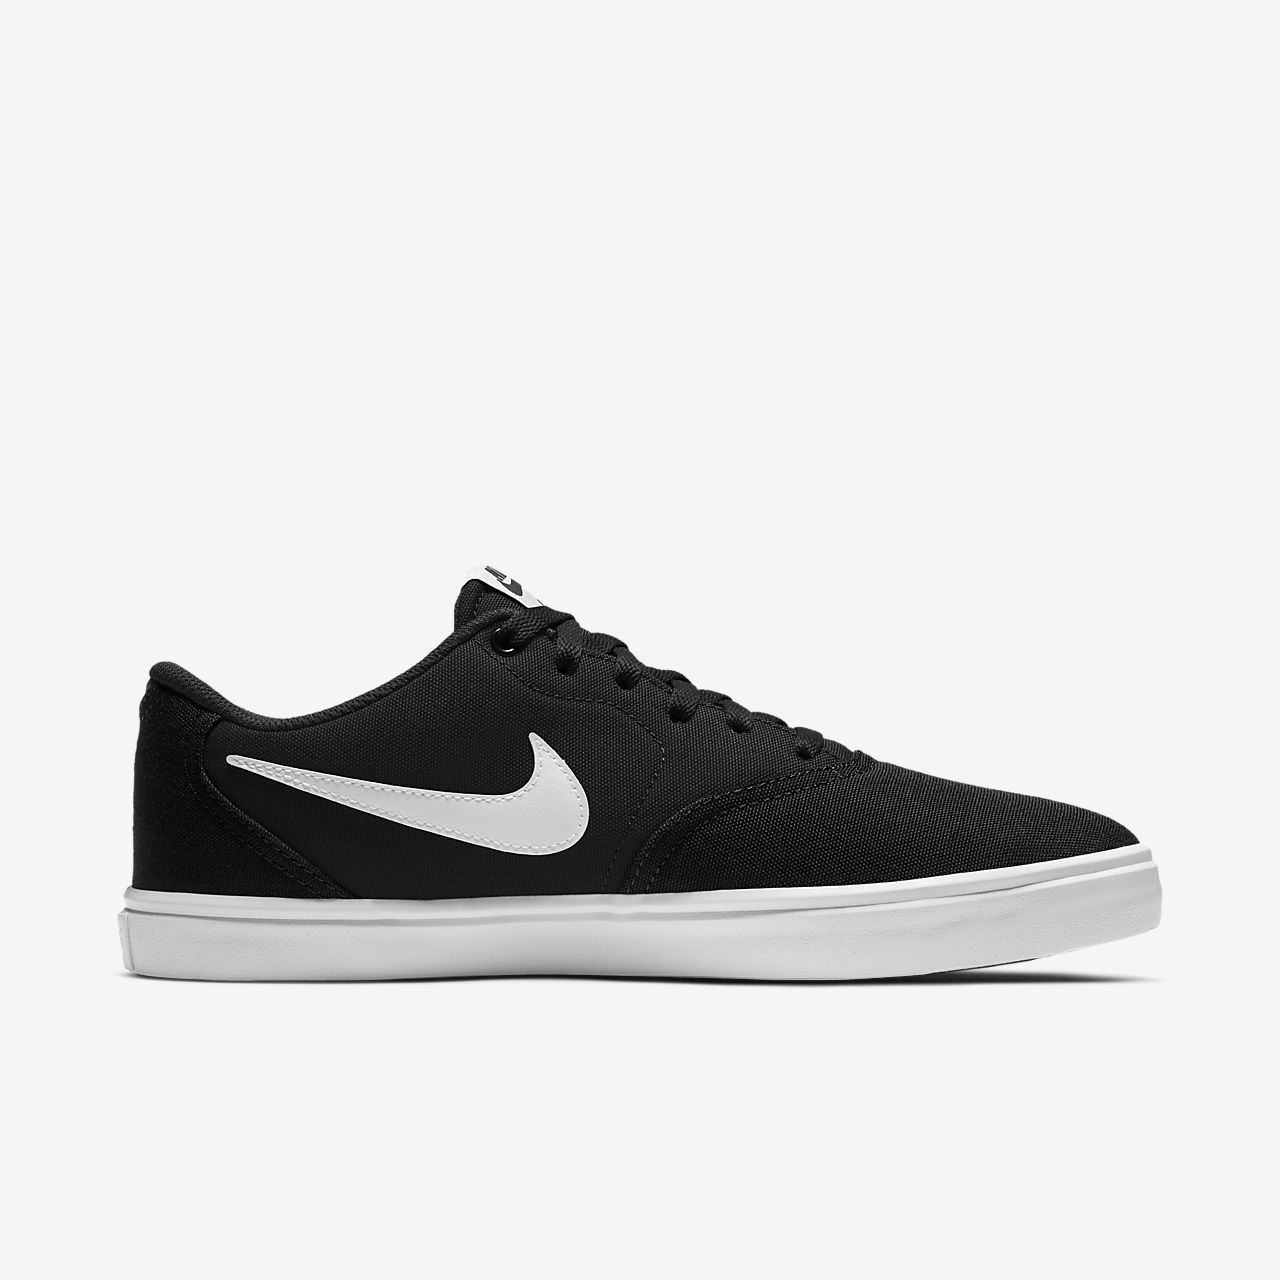 check out b4f5b 7d459 ... Chaussure de skateboard Nike SB Check Solarsoft Canvas pour Homme